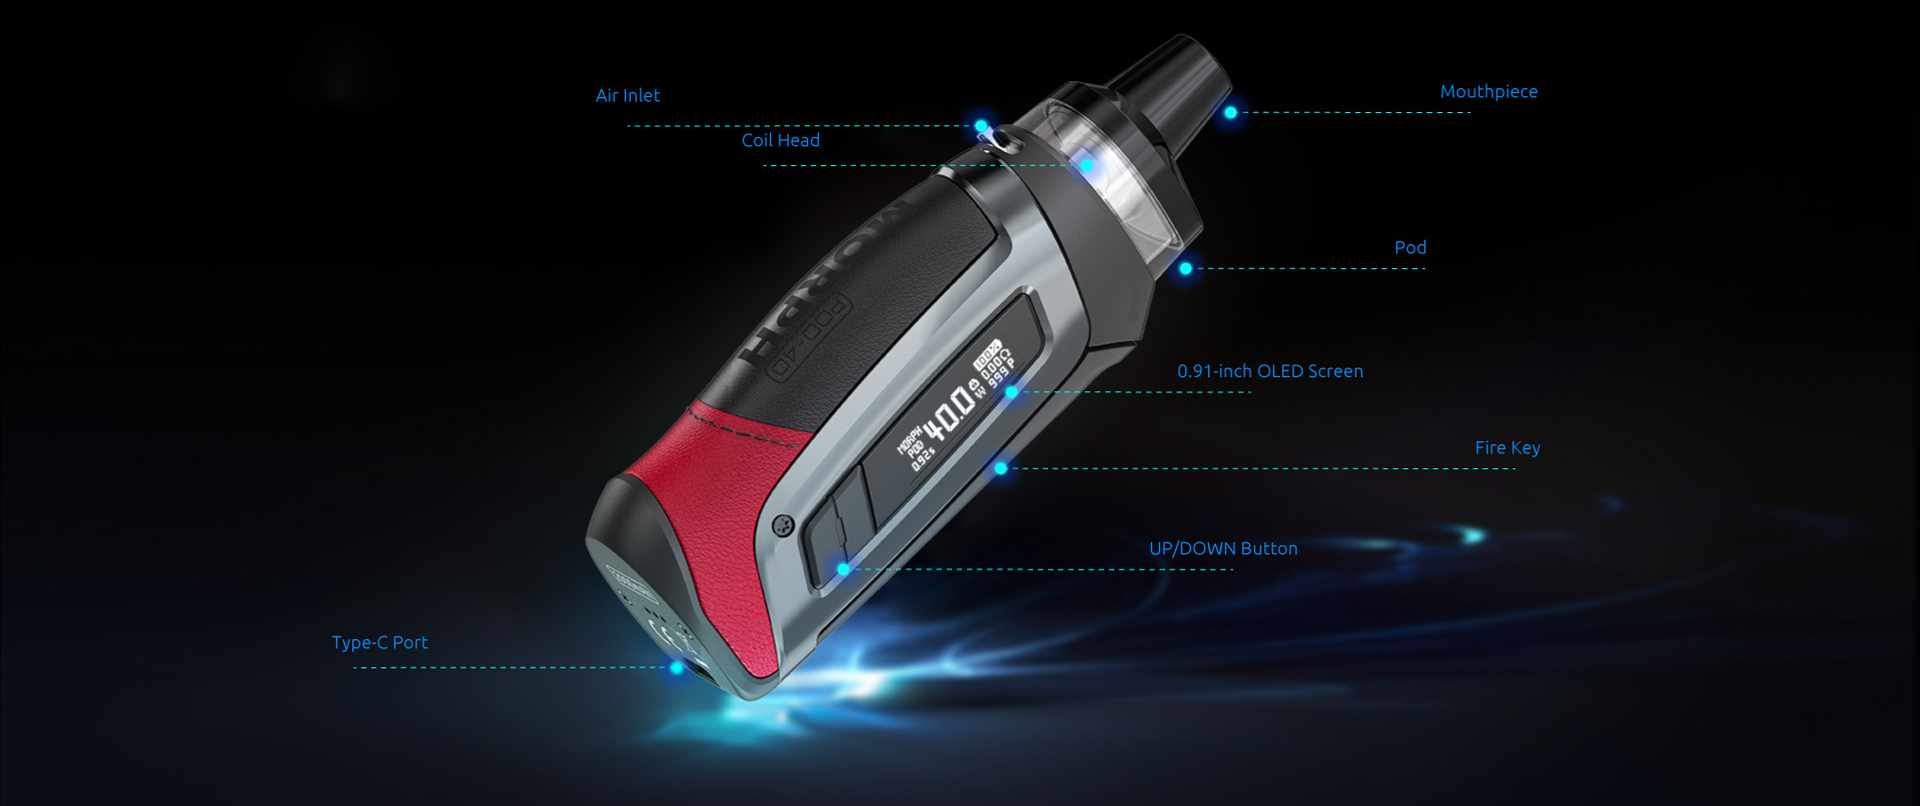 A silver SMOK pod device with text indicating its features.